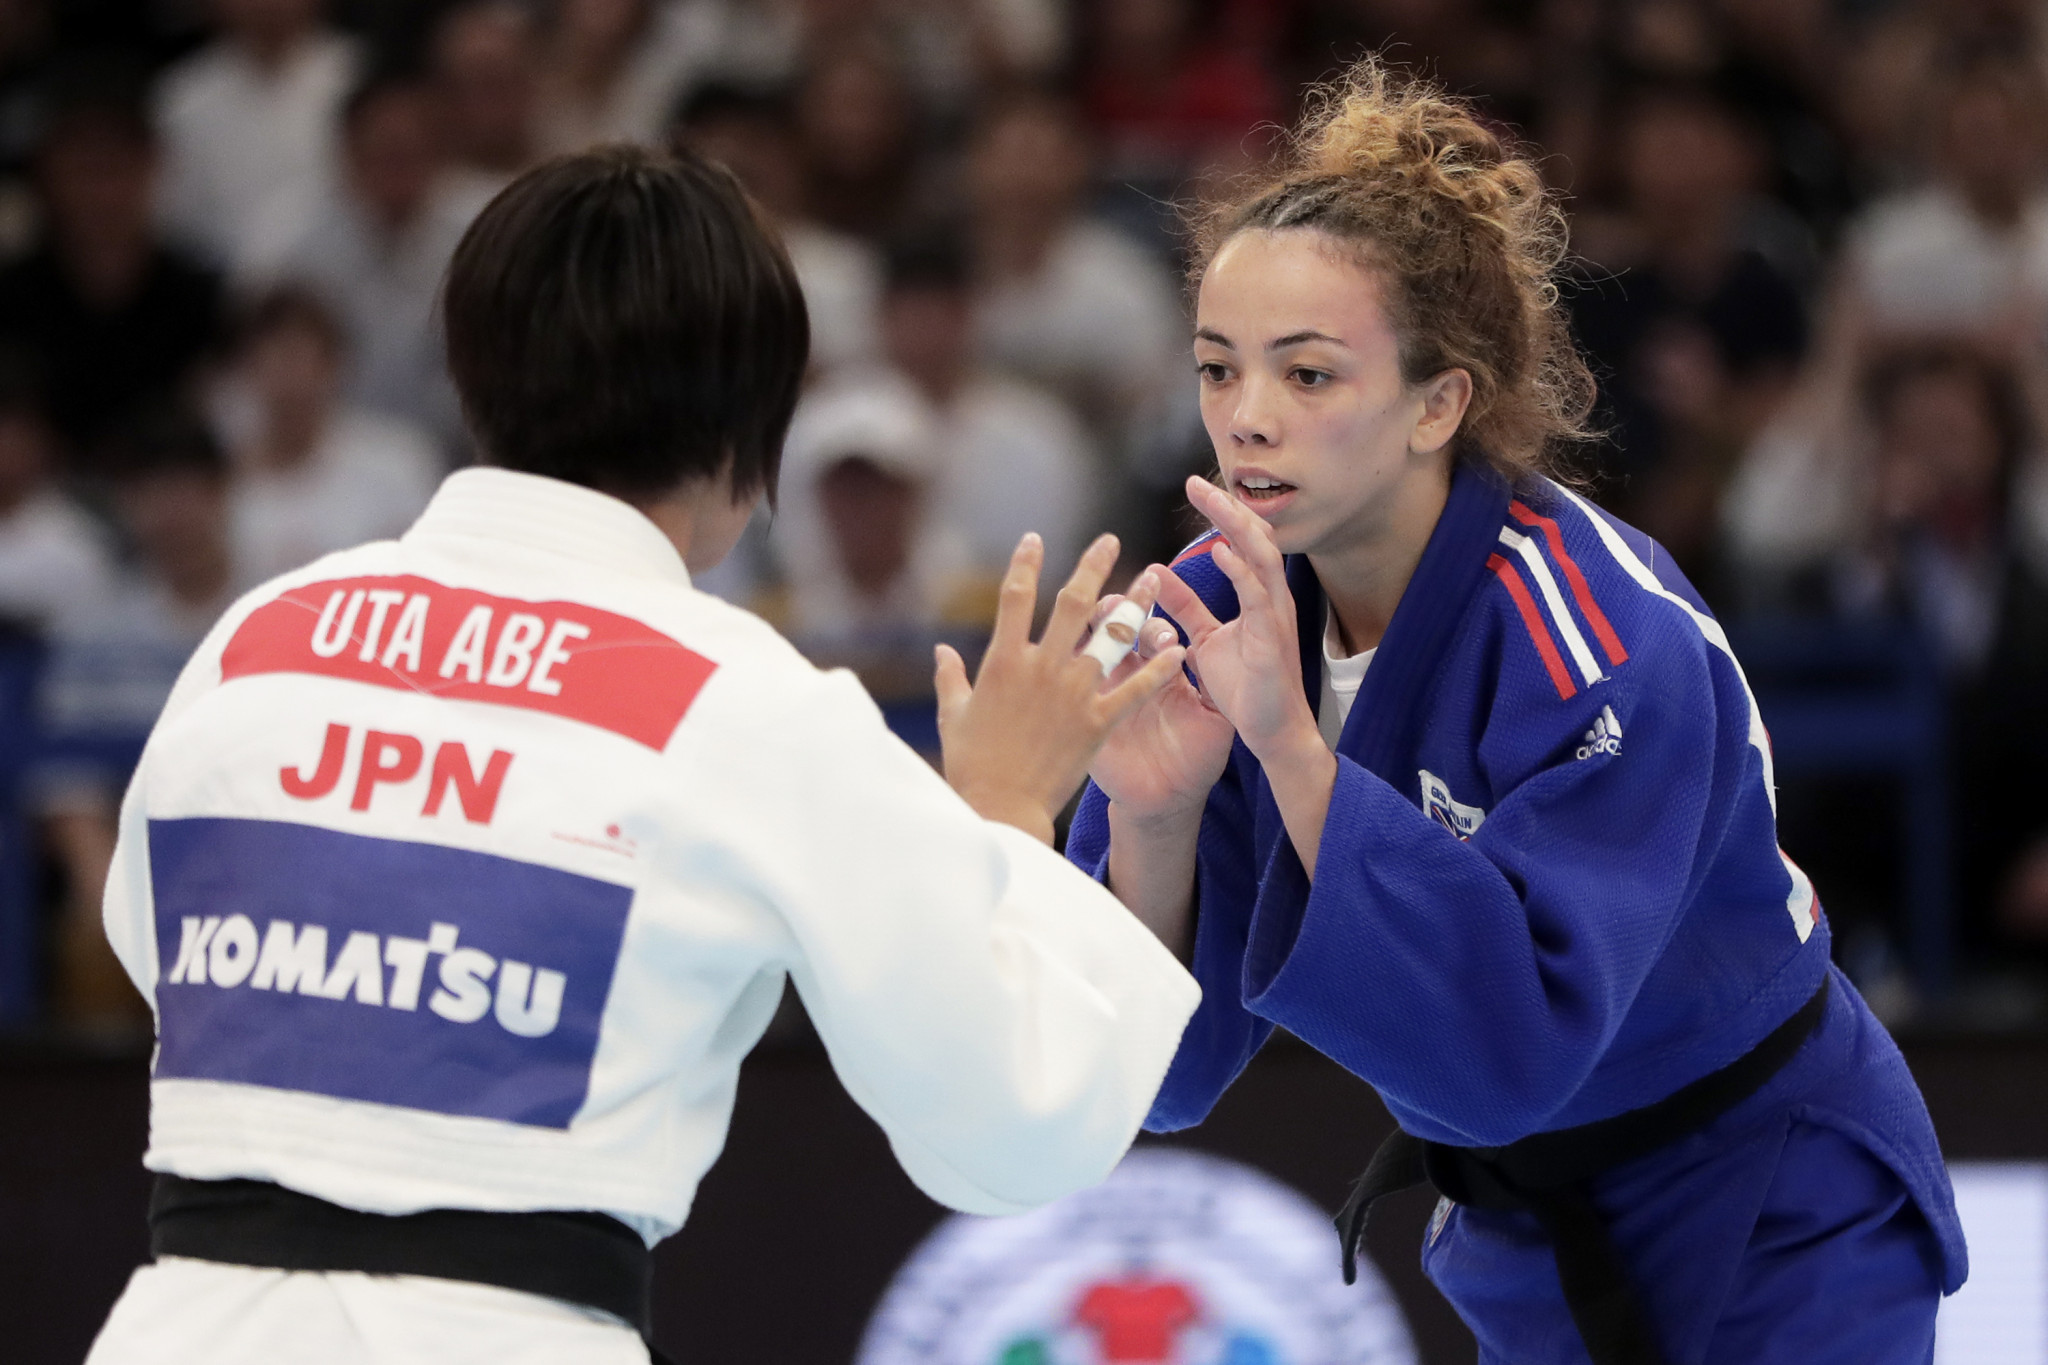 Mollaei set to represent Mongolia again at IJF Grand Slam in Düsseldorf as race for Tokyo 2020 continues